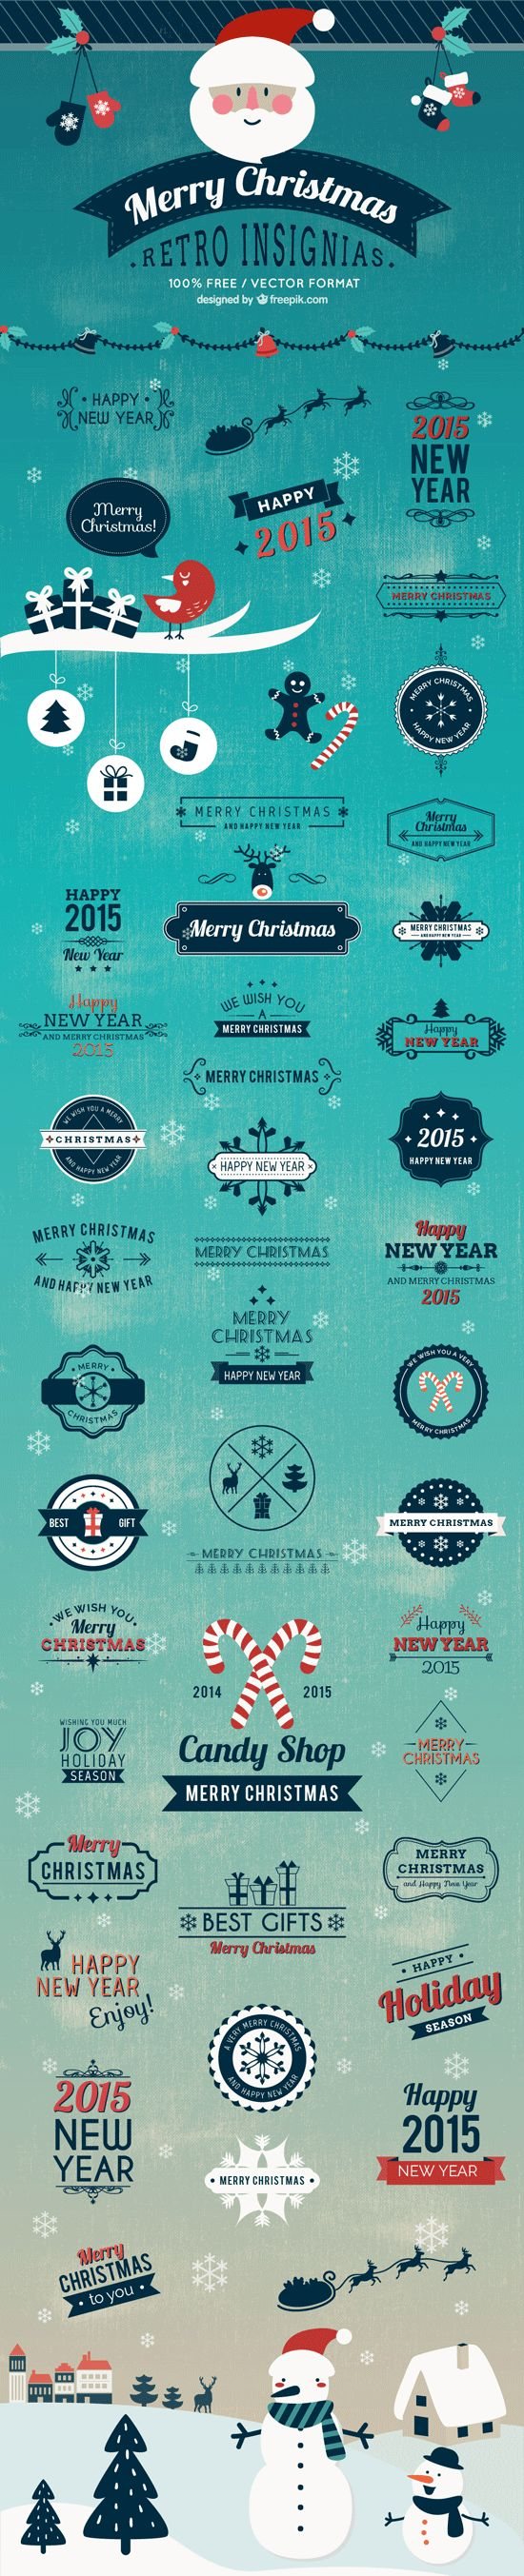 This pack includes over 40 free vector Christmas badges you can use in your winter season designs, like : reindeers, snowmans, candy canes, pine trees and more.